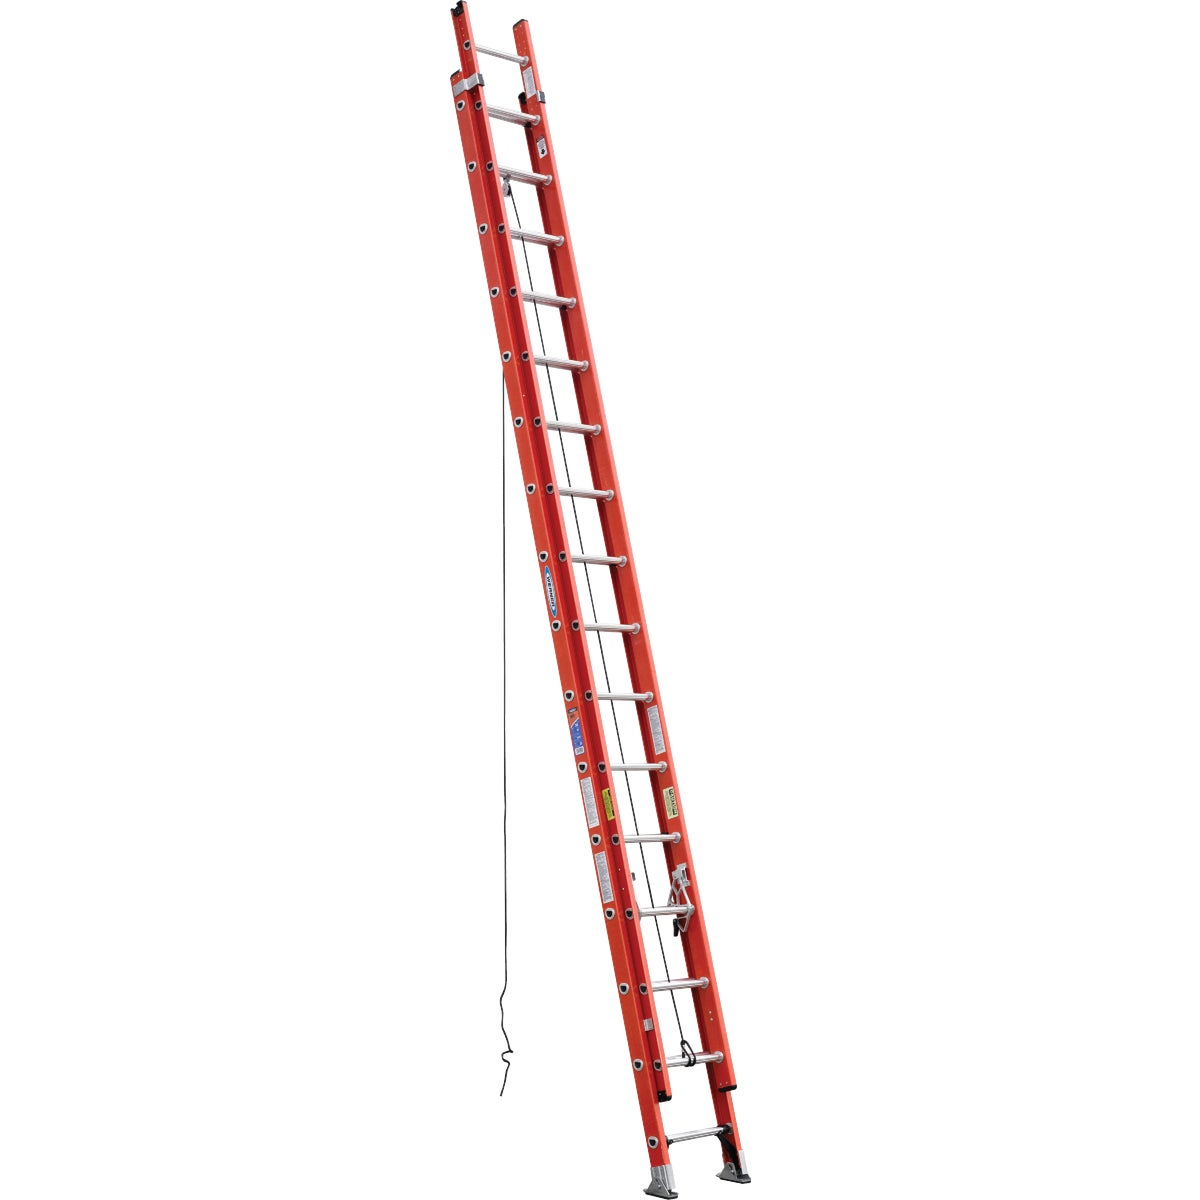 T-1A 32' FBGL EXT LADDER - D6232-2 by Werner Ladder